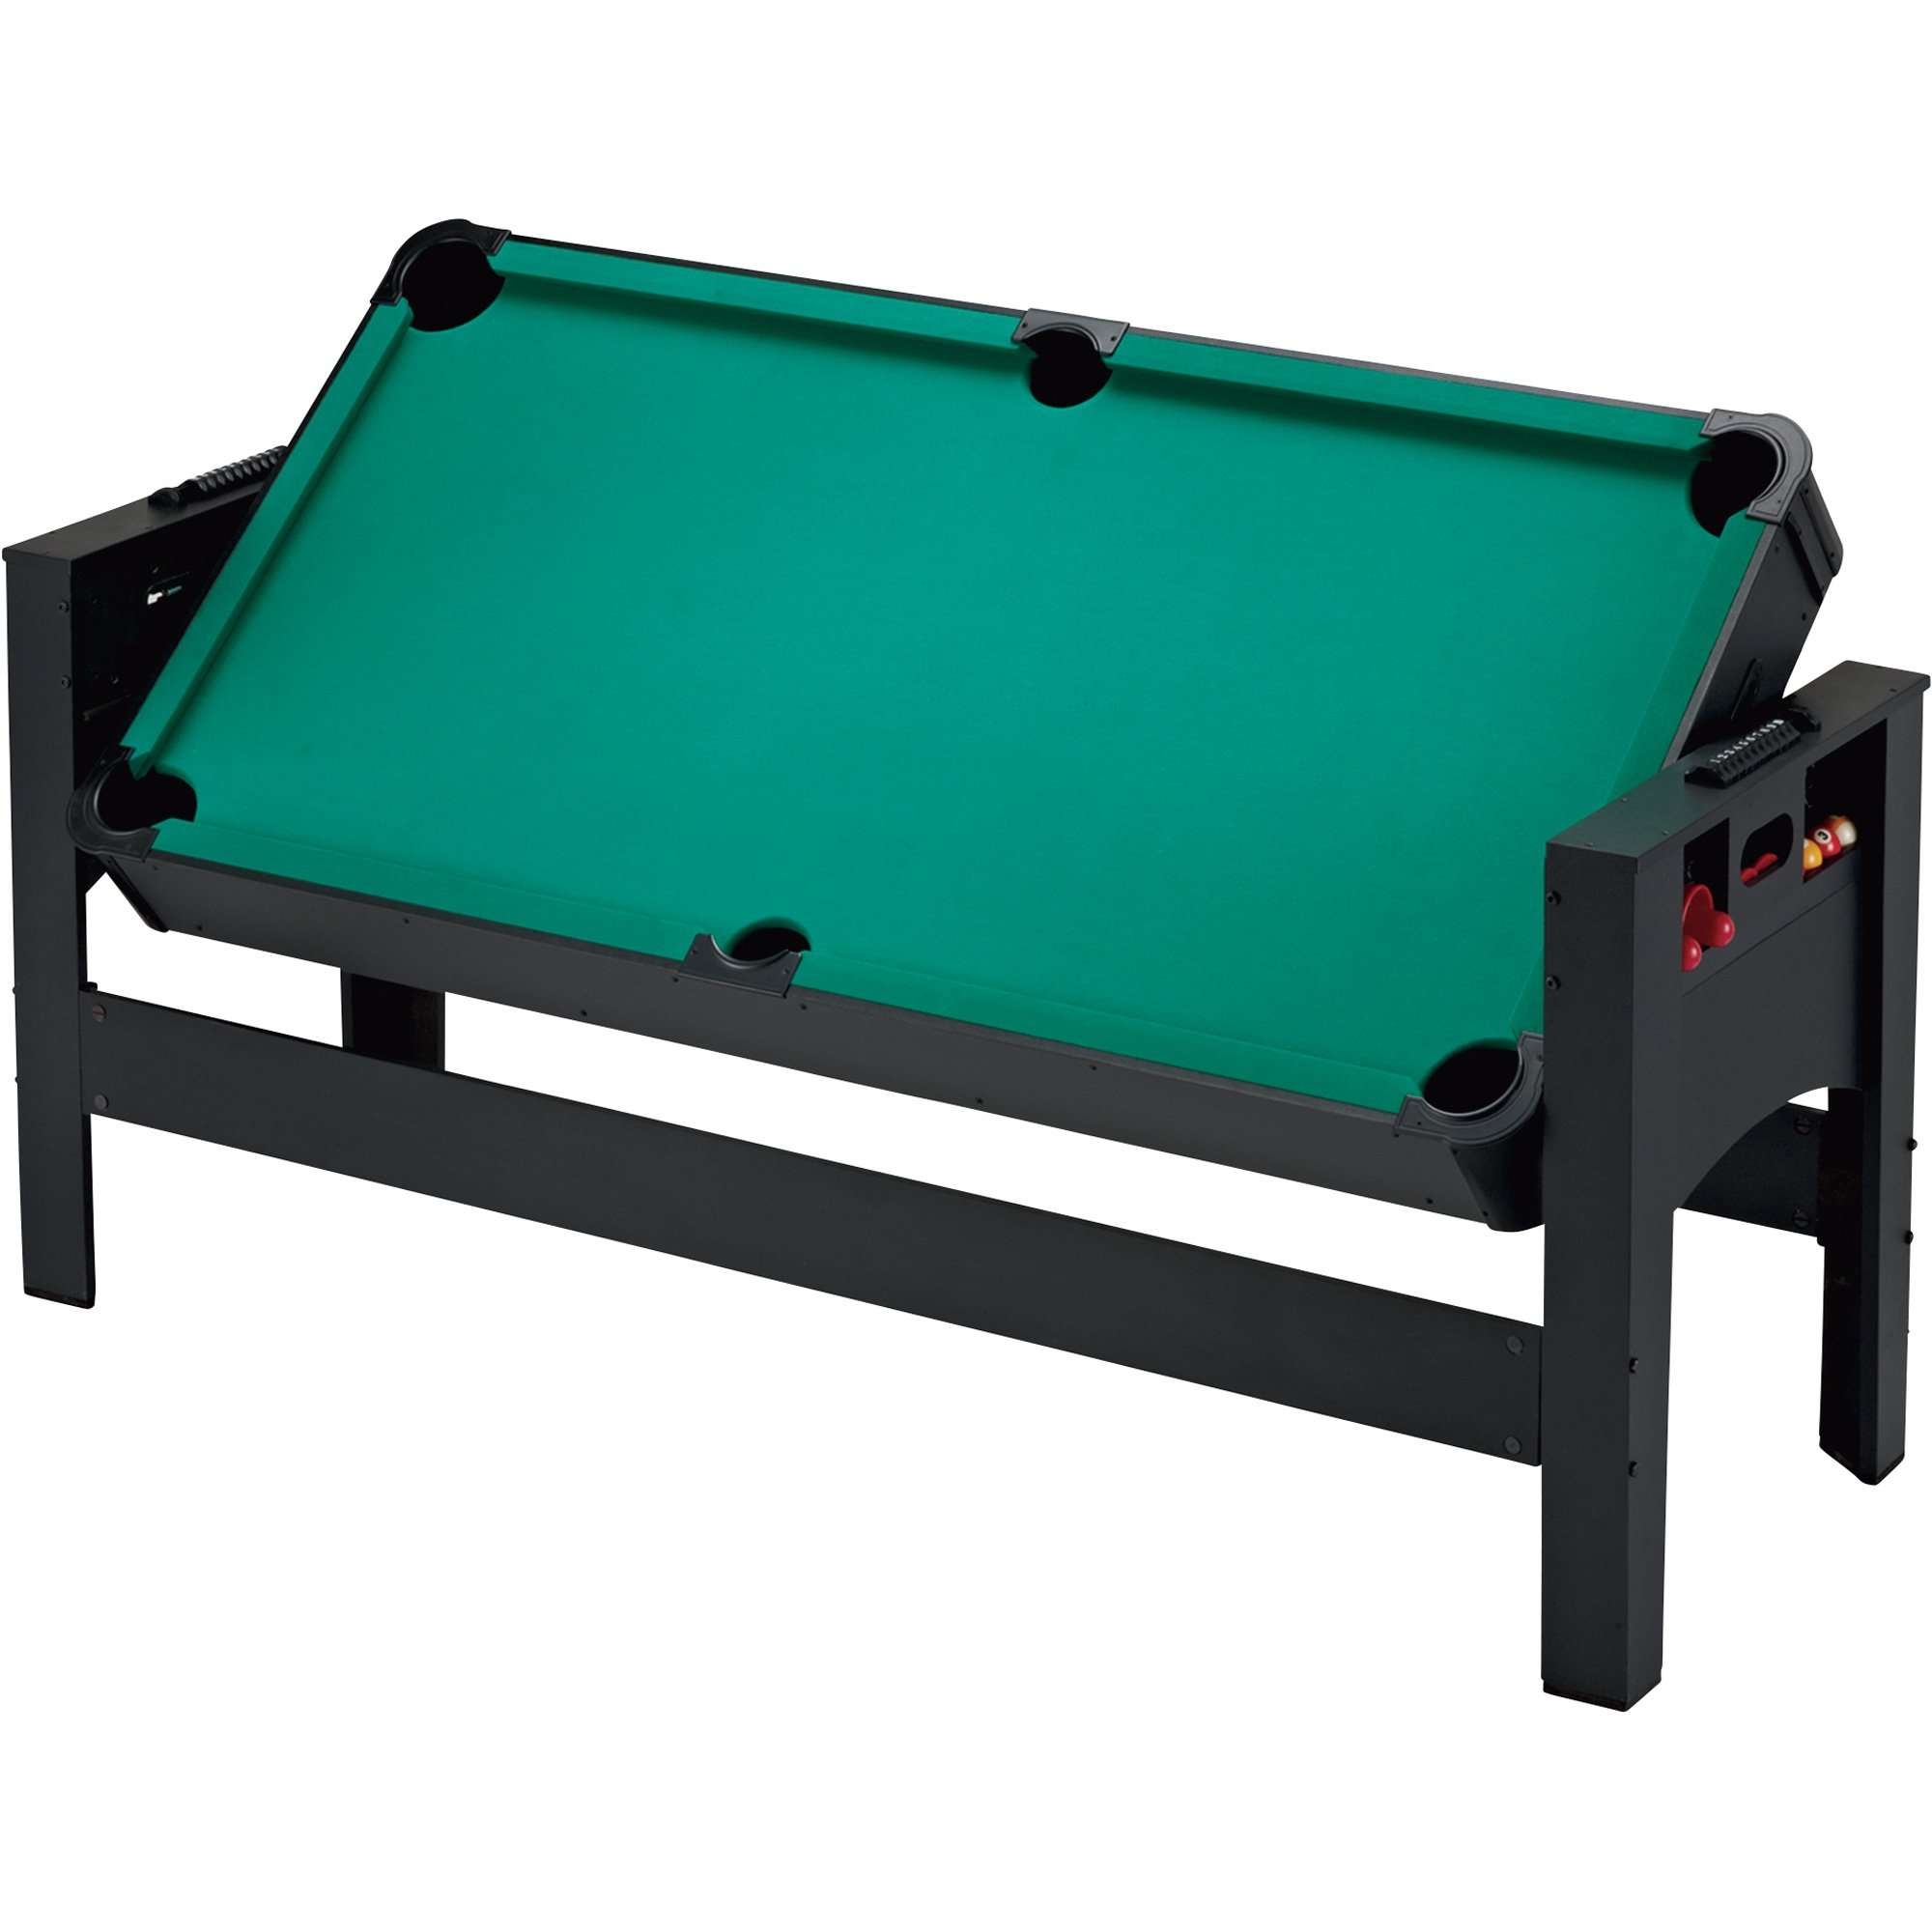 Fat Cat Original 2-in-1, 7-Foot Pockey Game Table (Air Hockey and Billiards) by Fat Cat by GLD Products